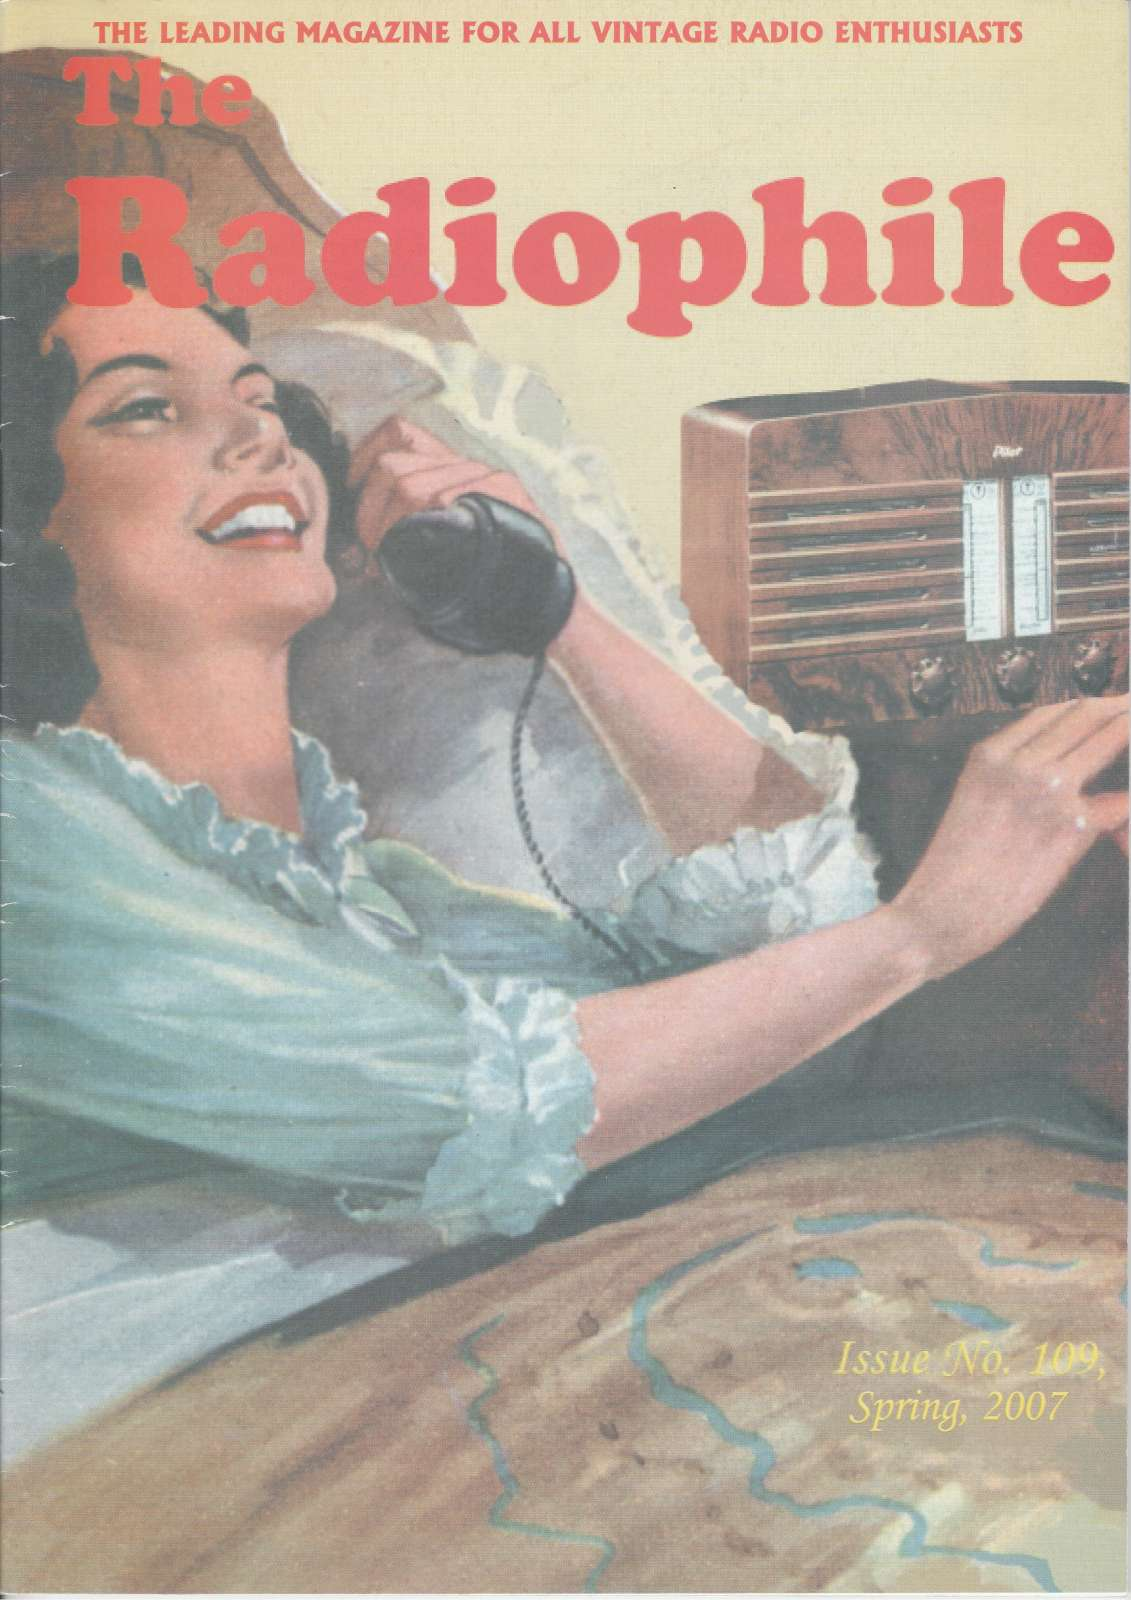 Radiophile Issue 109